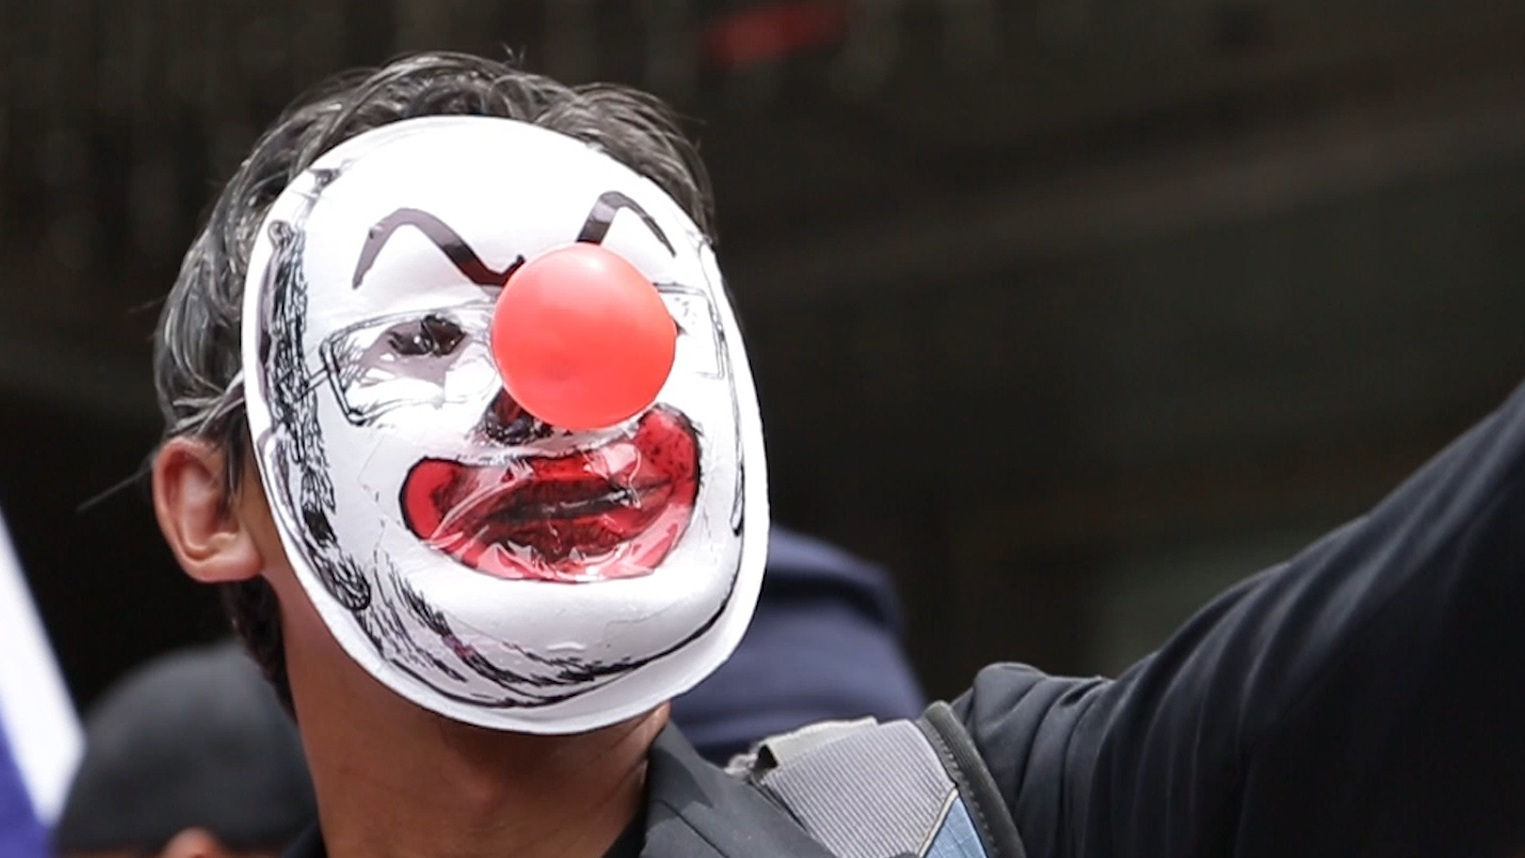 Kelptocrats_DogWoof_02.39_Clown Faced Protester_903977.jpg